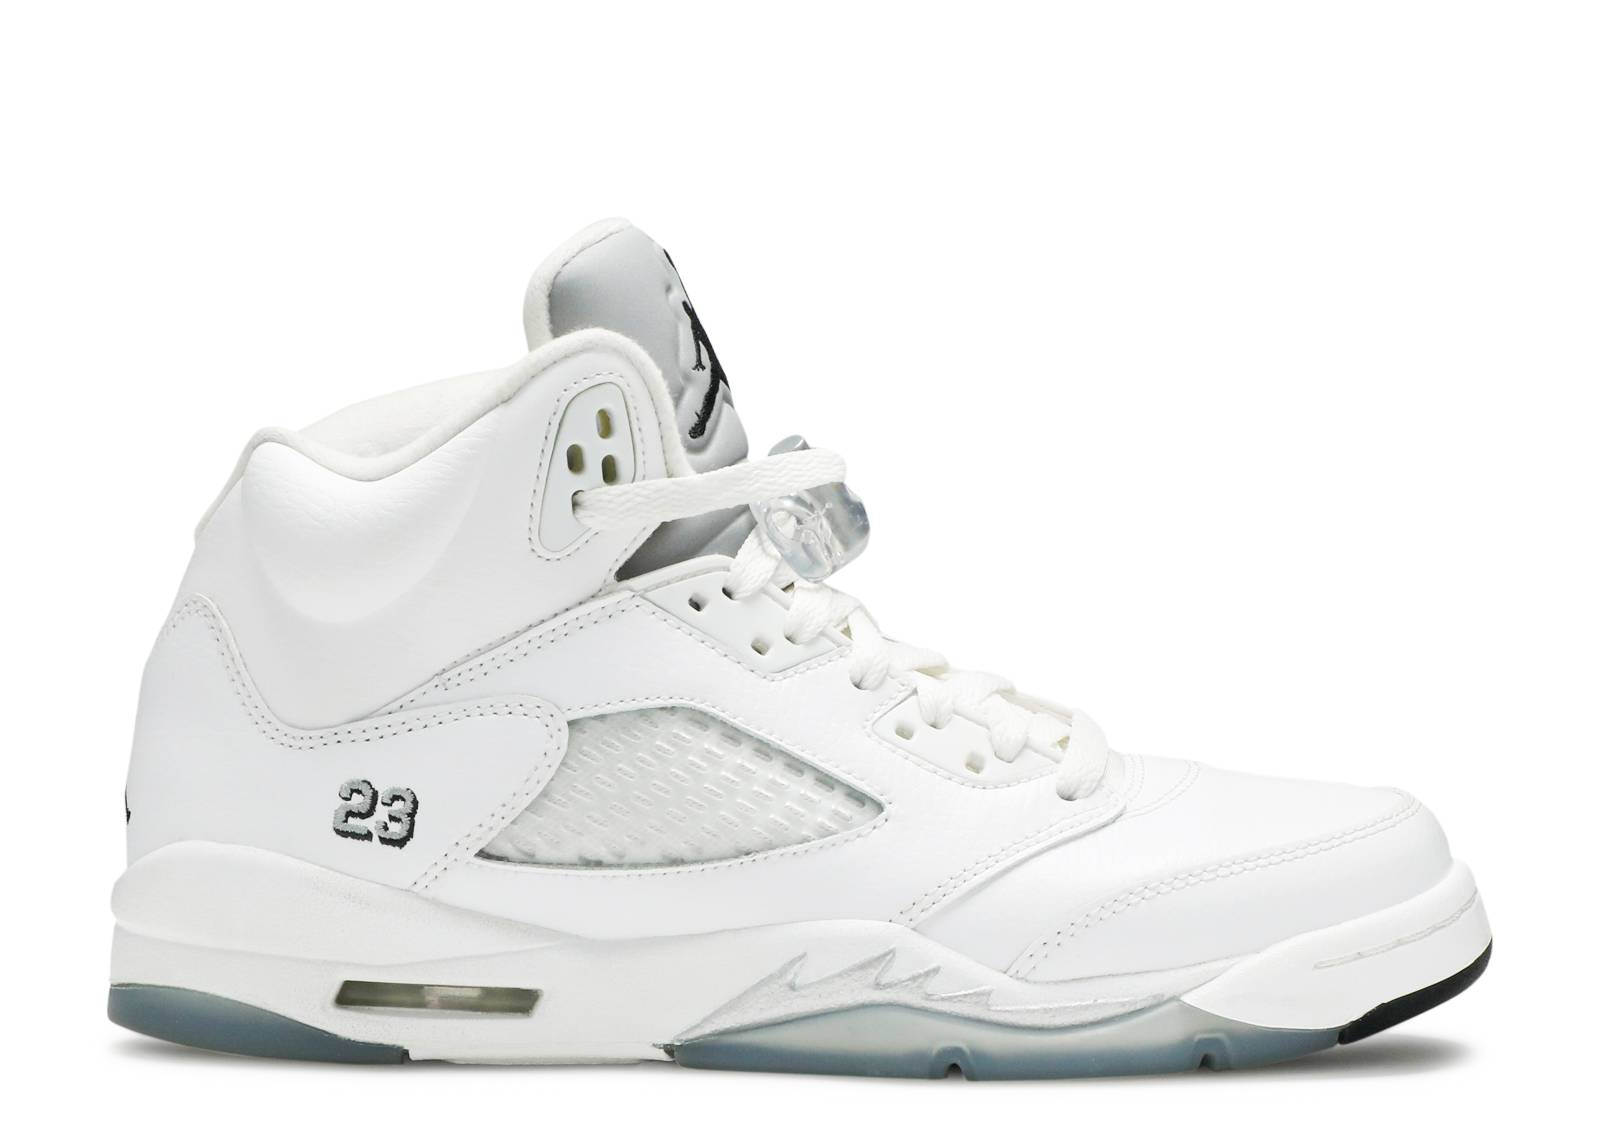 low priced 18132 1c2c8 Air Jordan 5 Retro BG 'Metallic White'